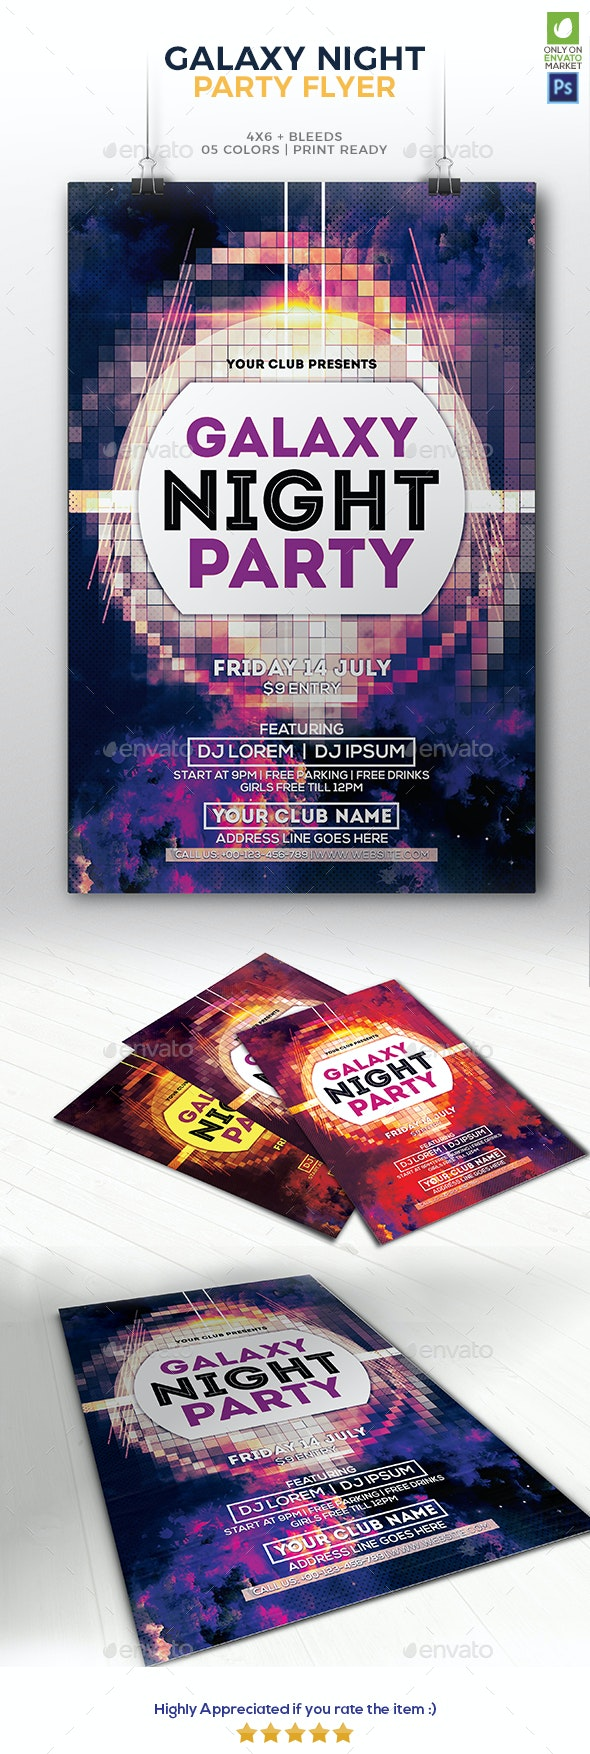 Galaxy Night Party Flyer - Clubs & Parties Events